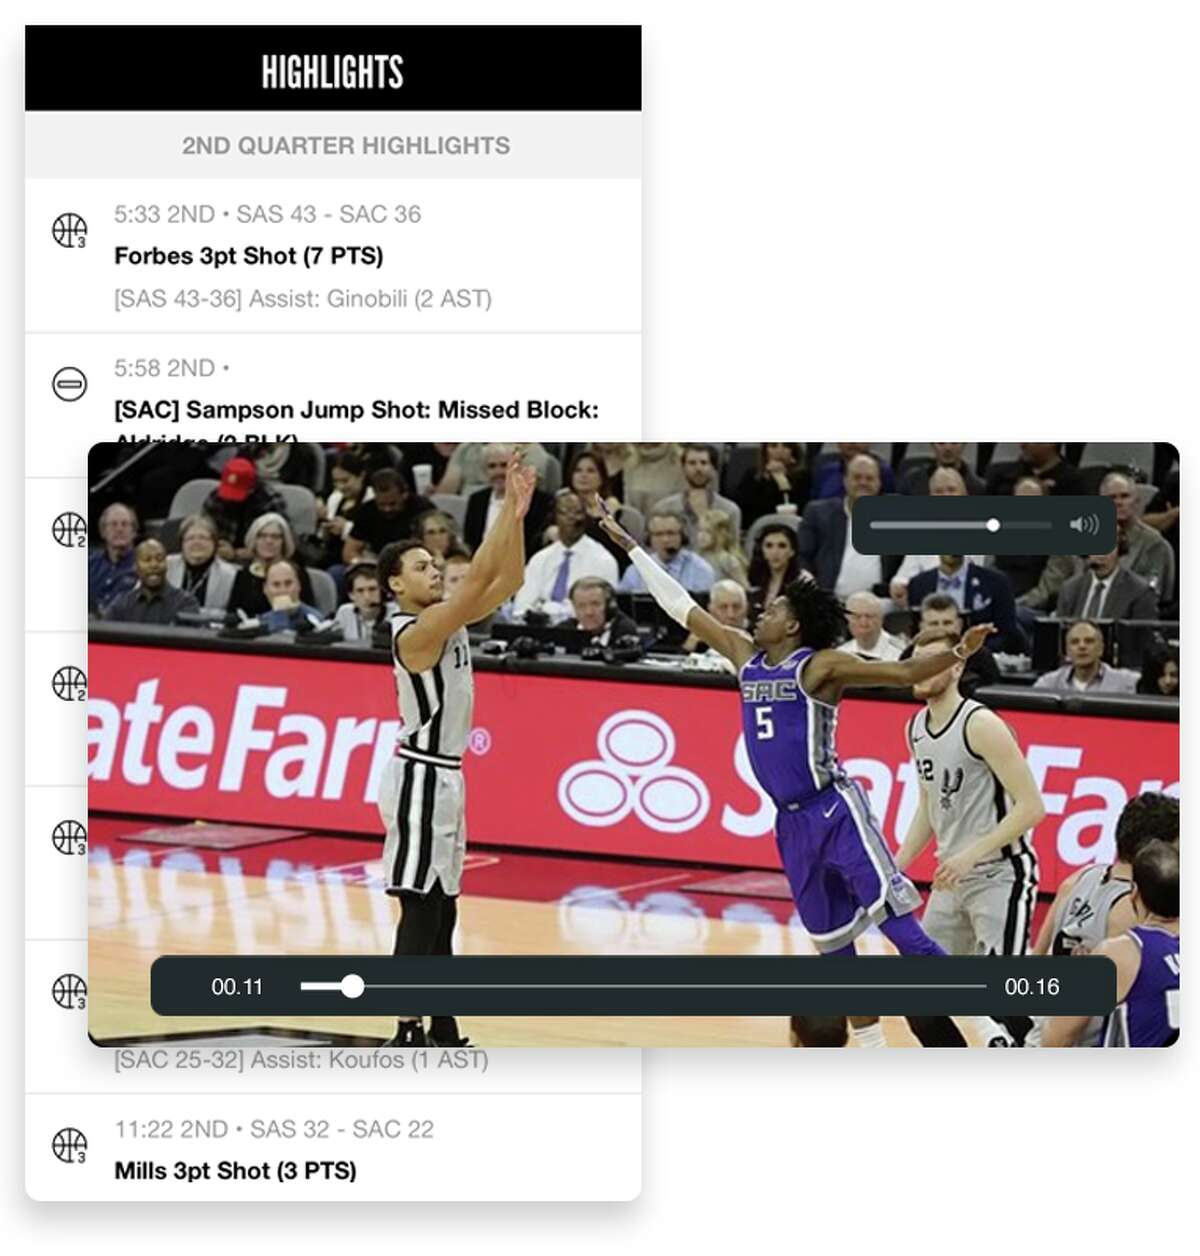 The replay screen on the San Antonio Spurs mobile app.